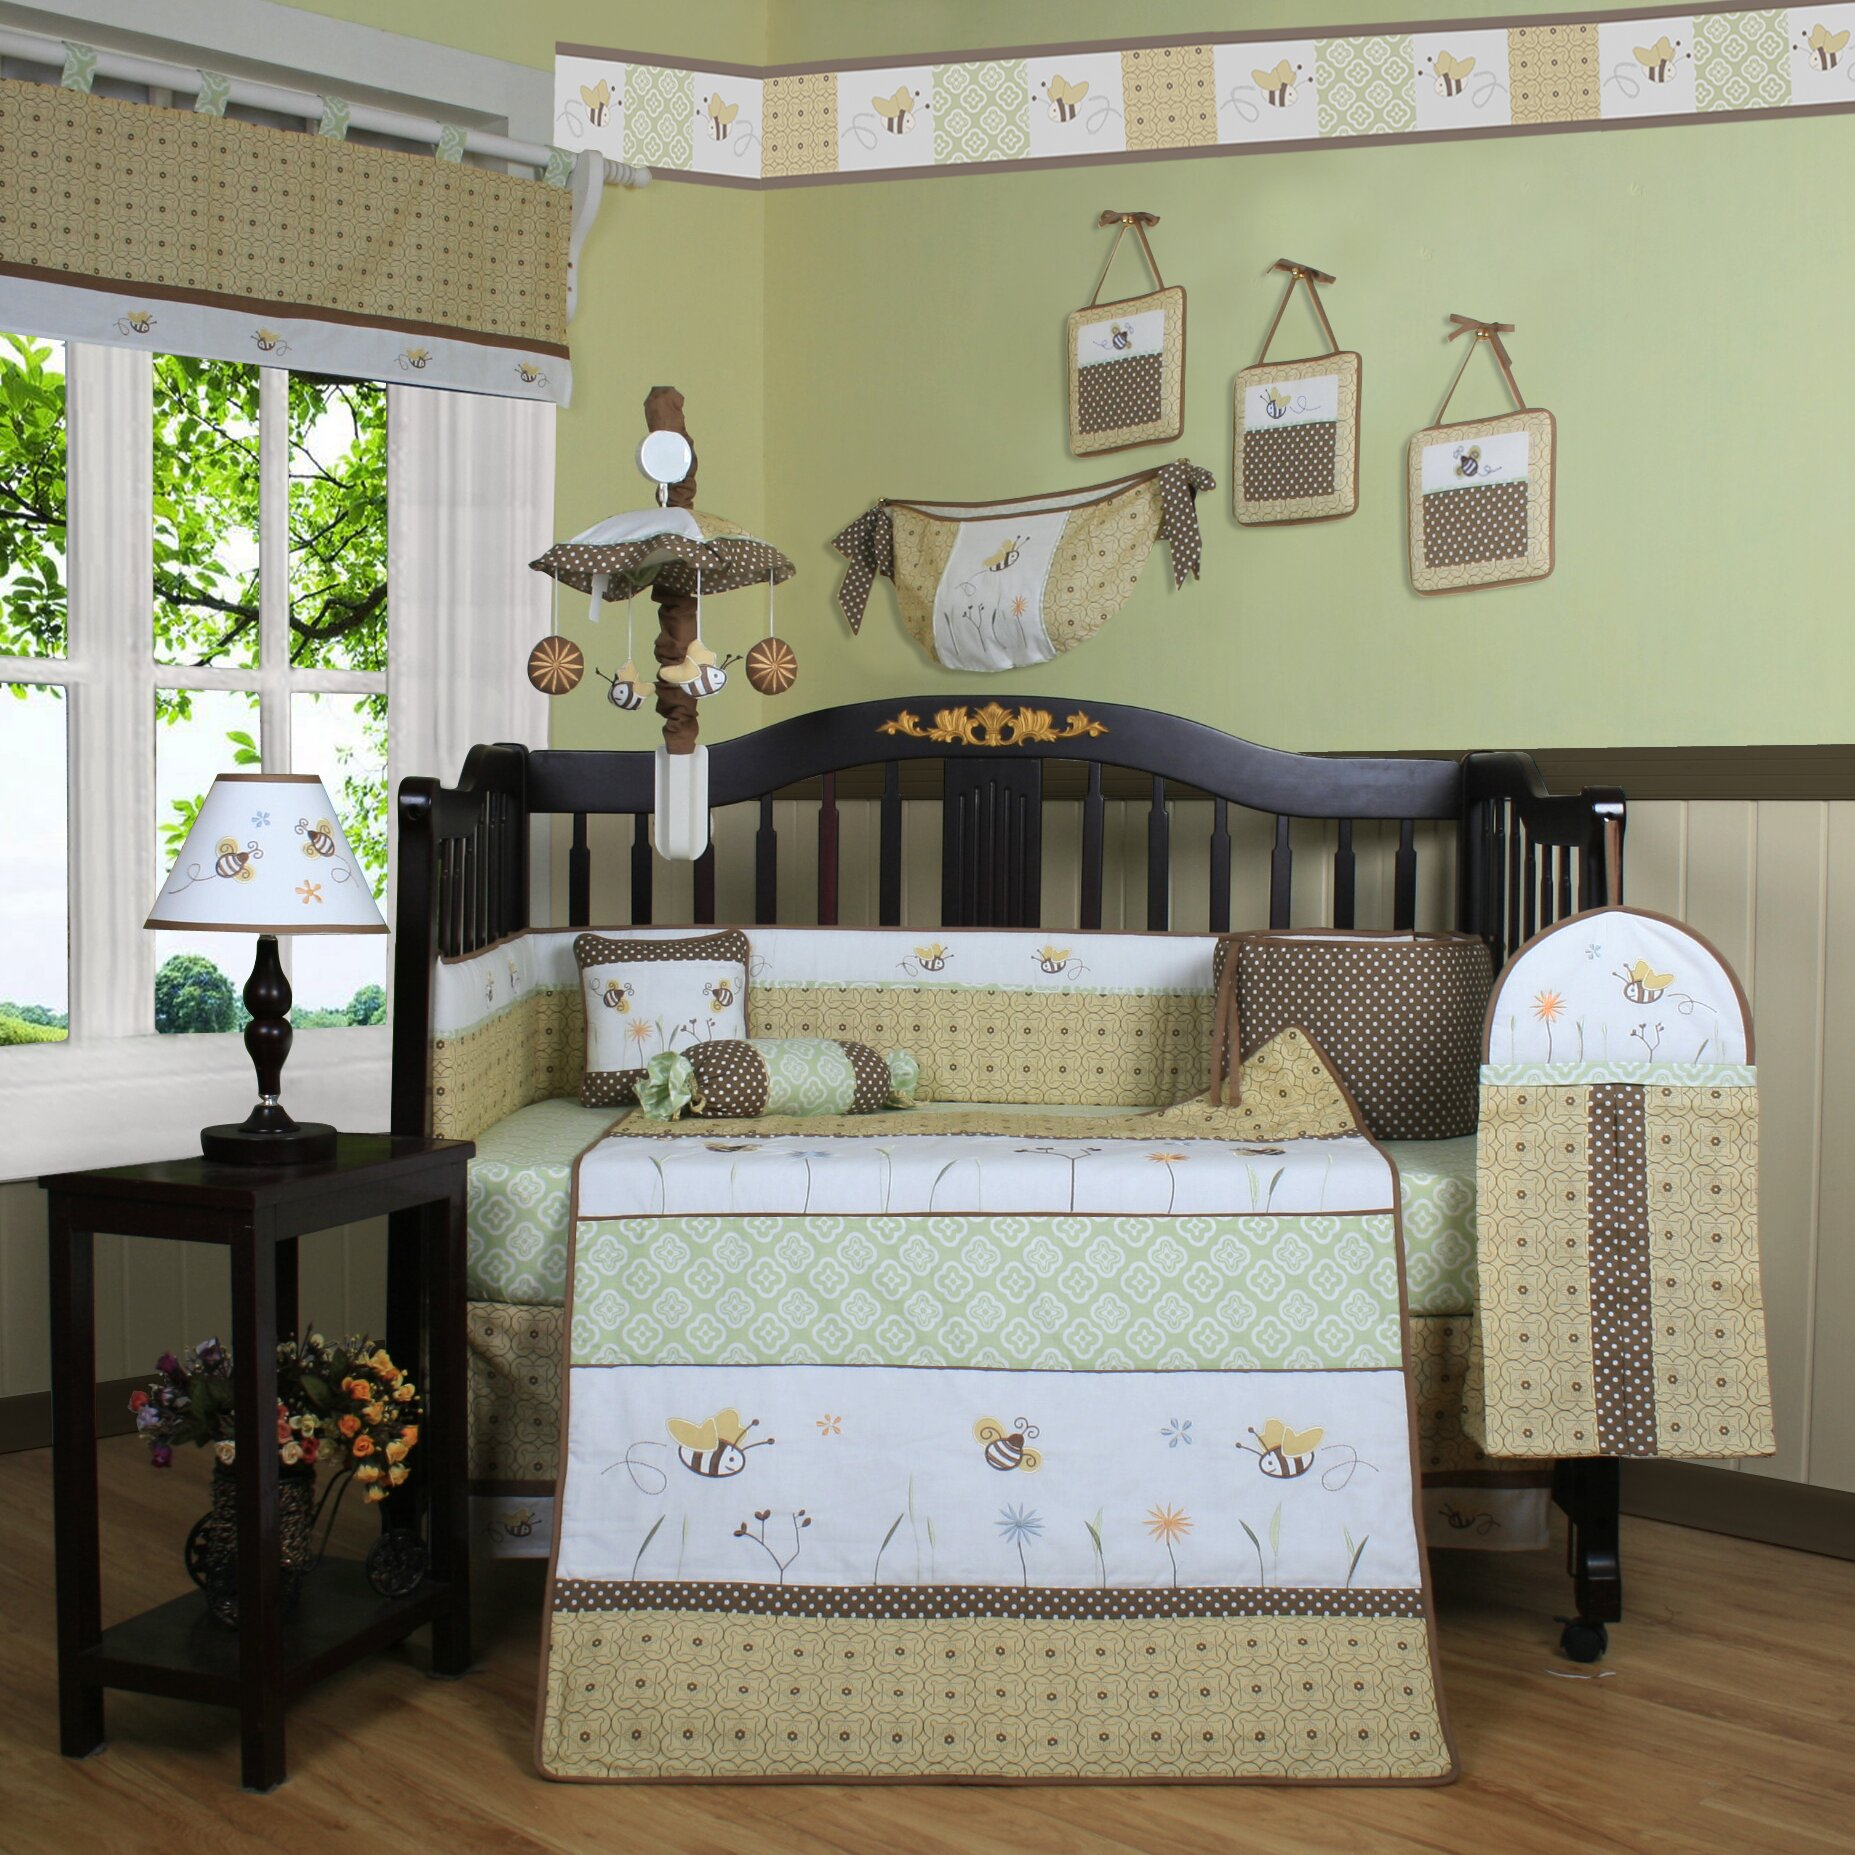 Harriet Bee Rollins 3 Piece Crib Bedding Set: Geenny Boutique Bumble Bee 13 Piece Crib Bedding Set